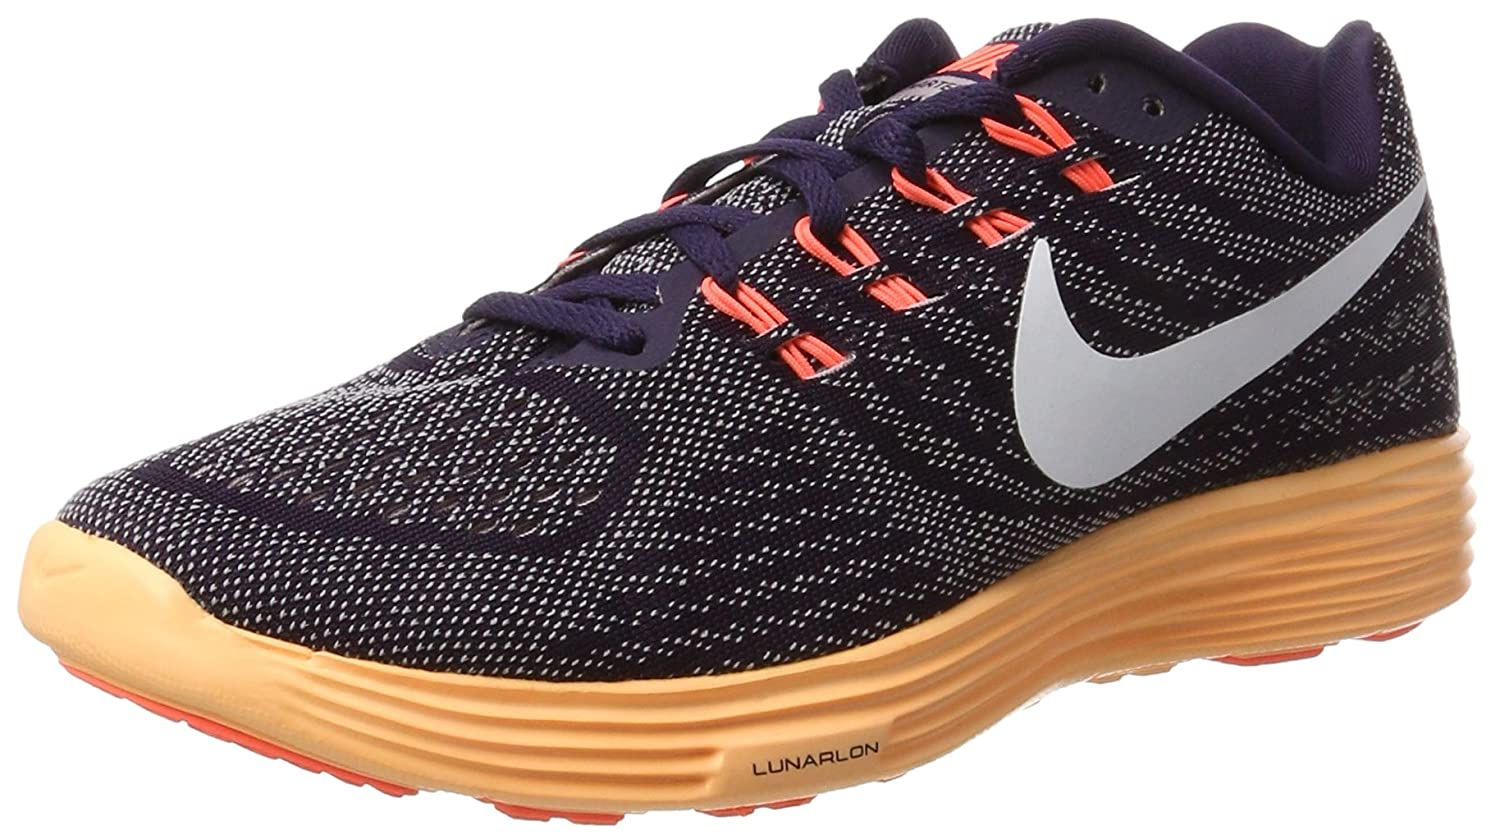 NIKE Women's Lunartempo 2 Running Shoe B01COKBYTE 10 B(M) US|Purple Dynasty/Bright Mango